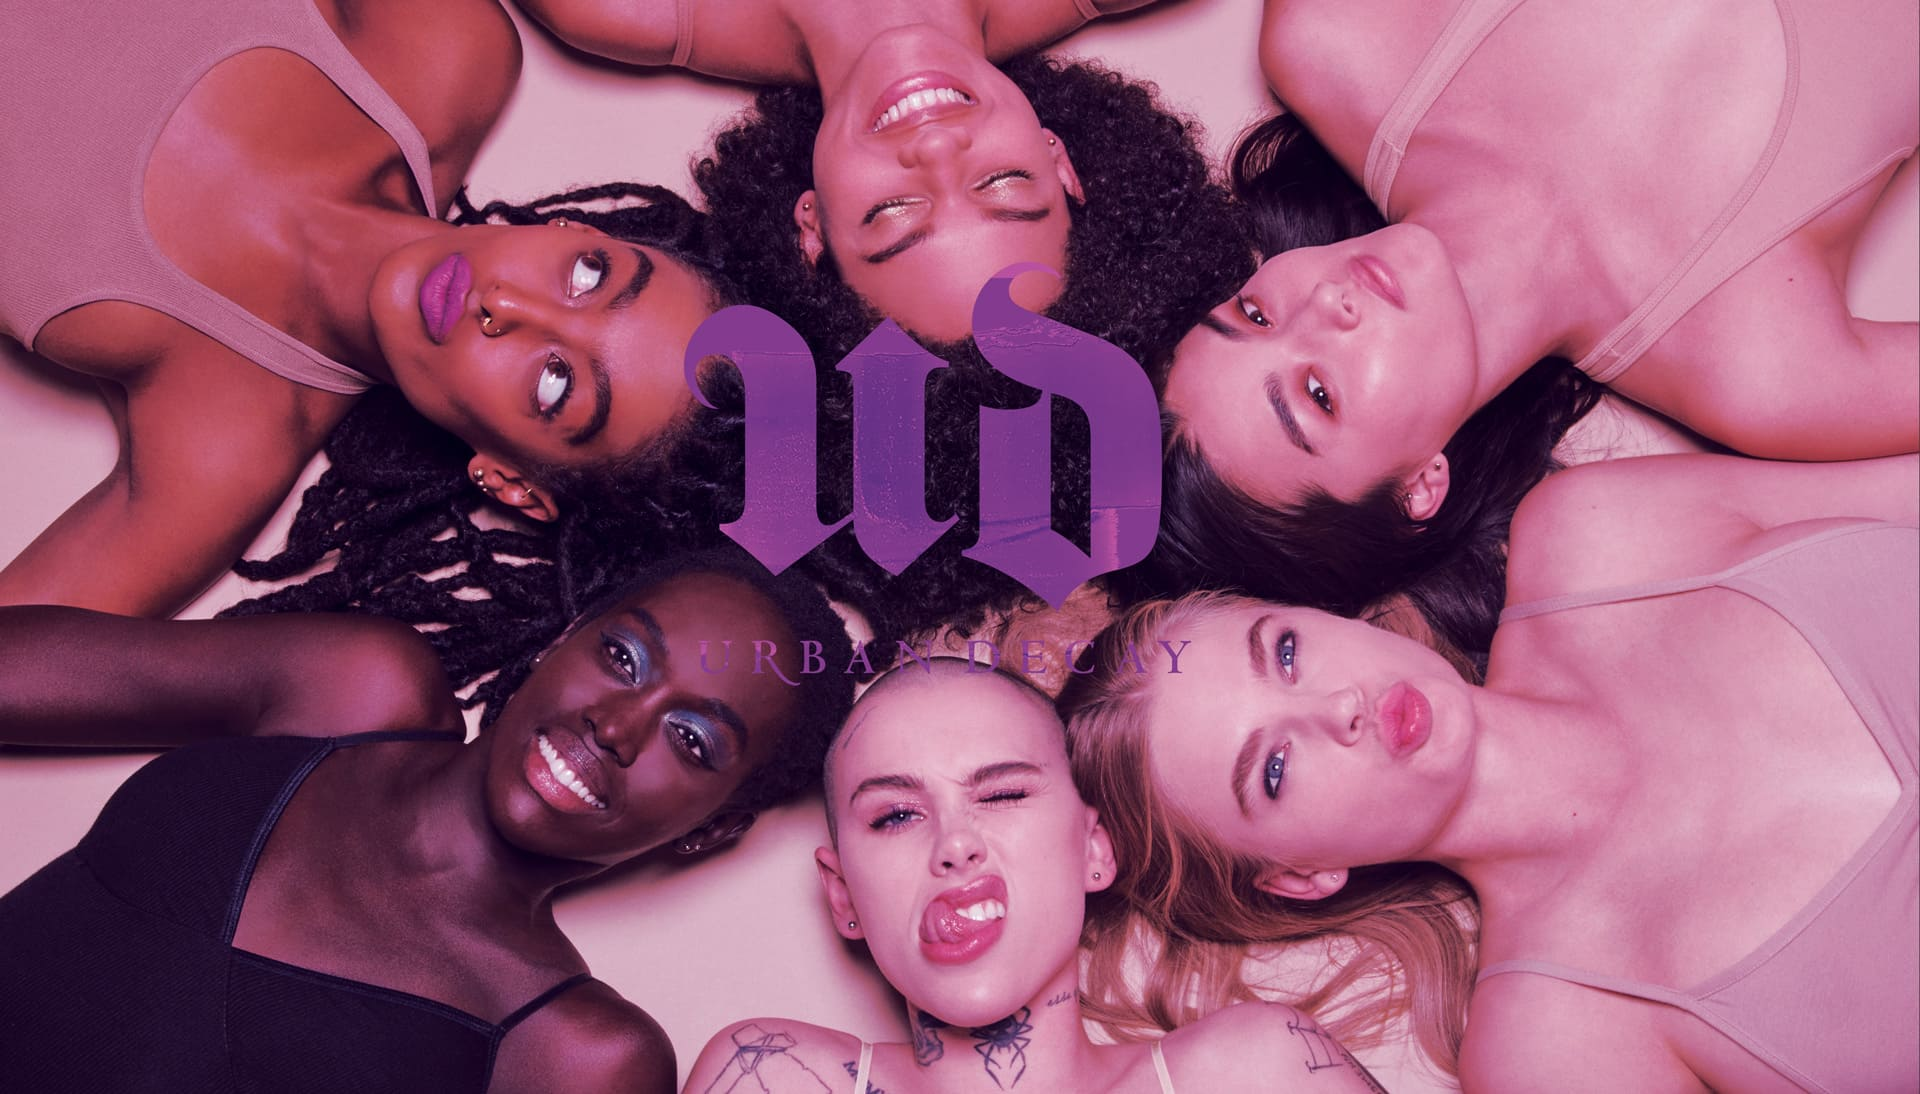 A diverse group of 6 women lying in a circle around the Urban Decay logo.